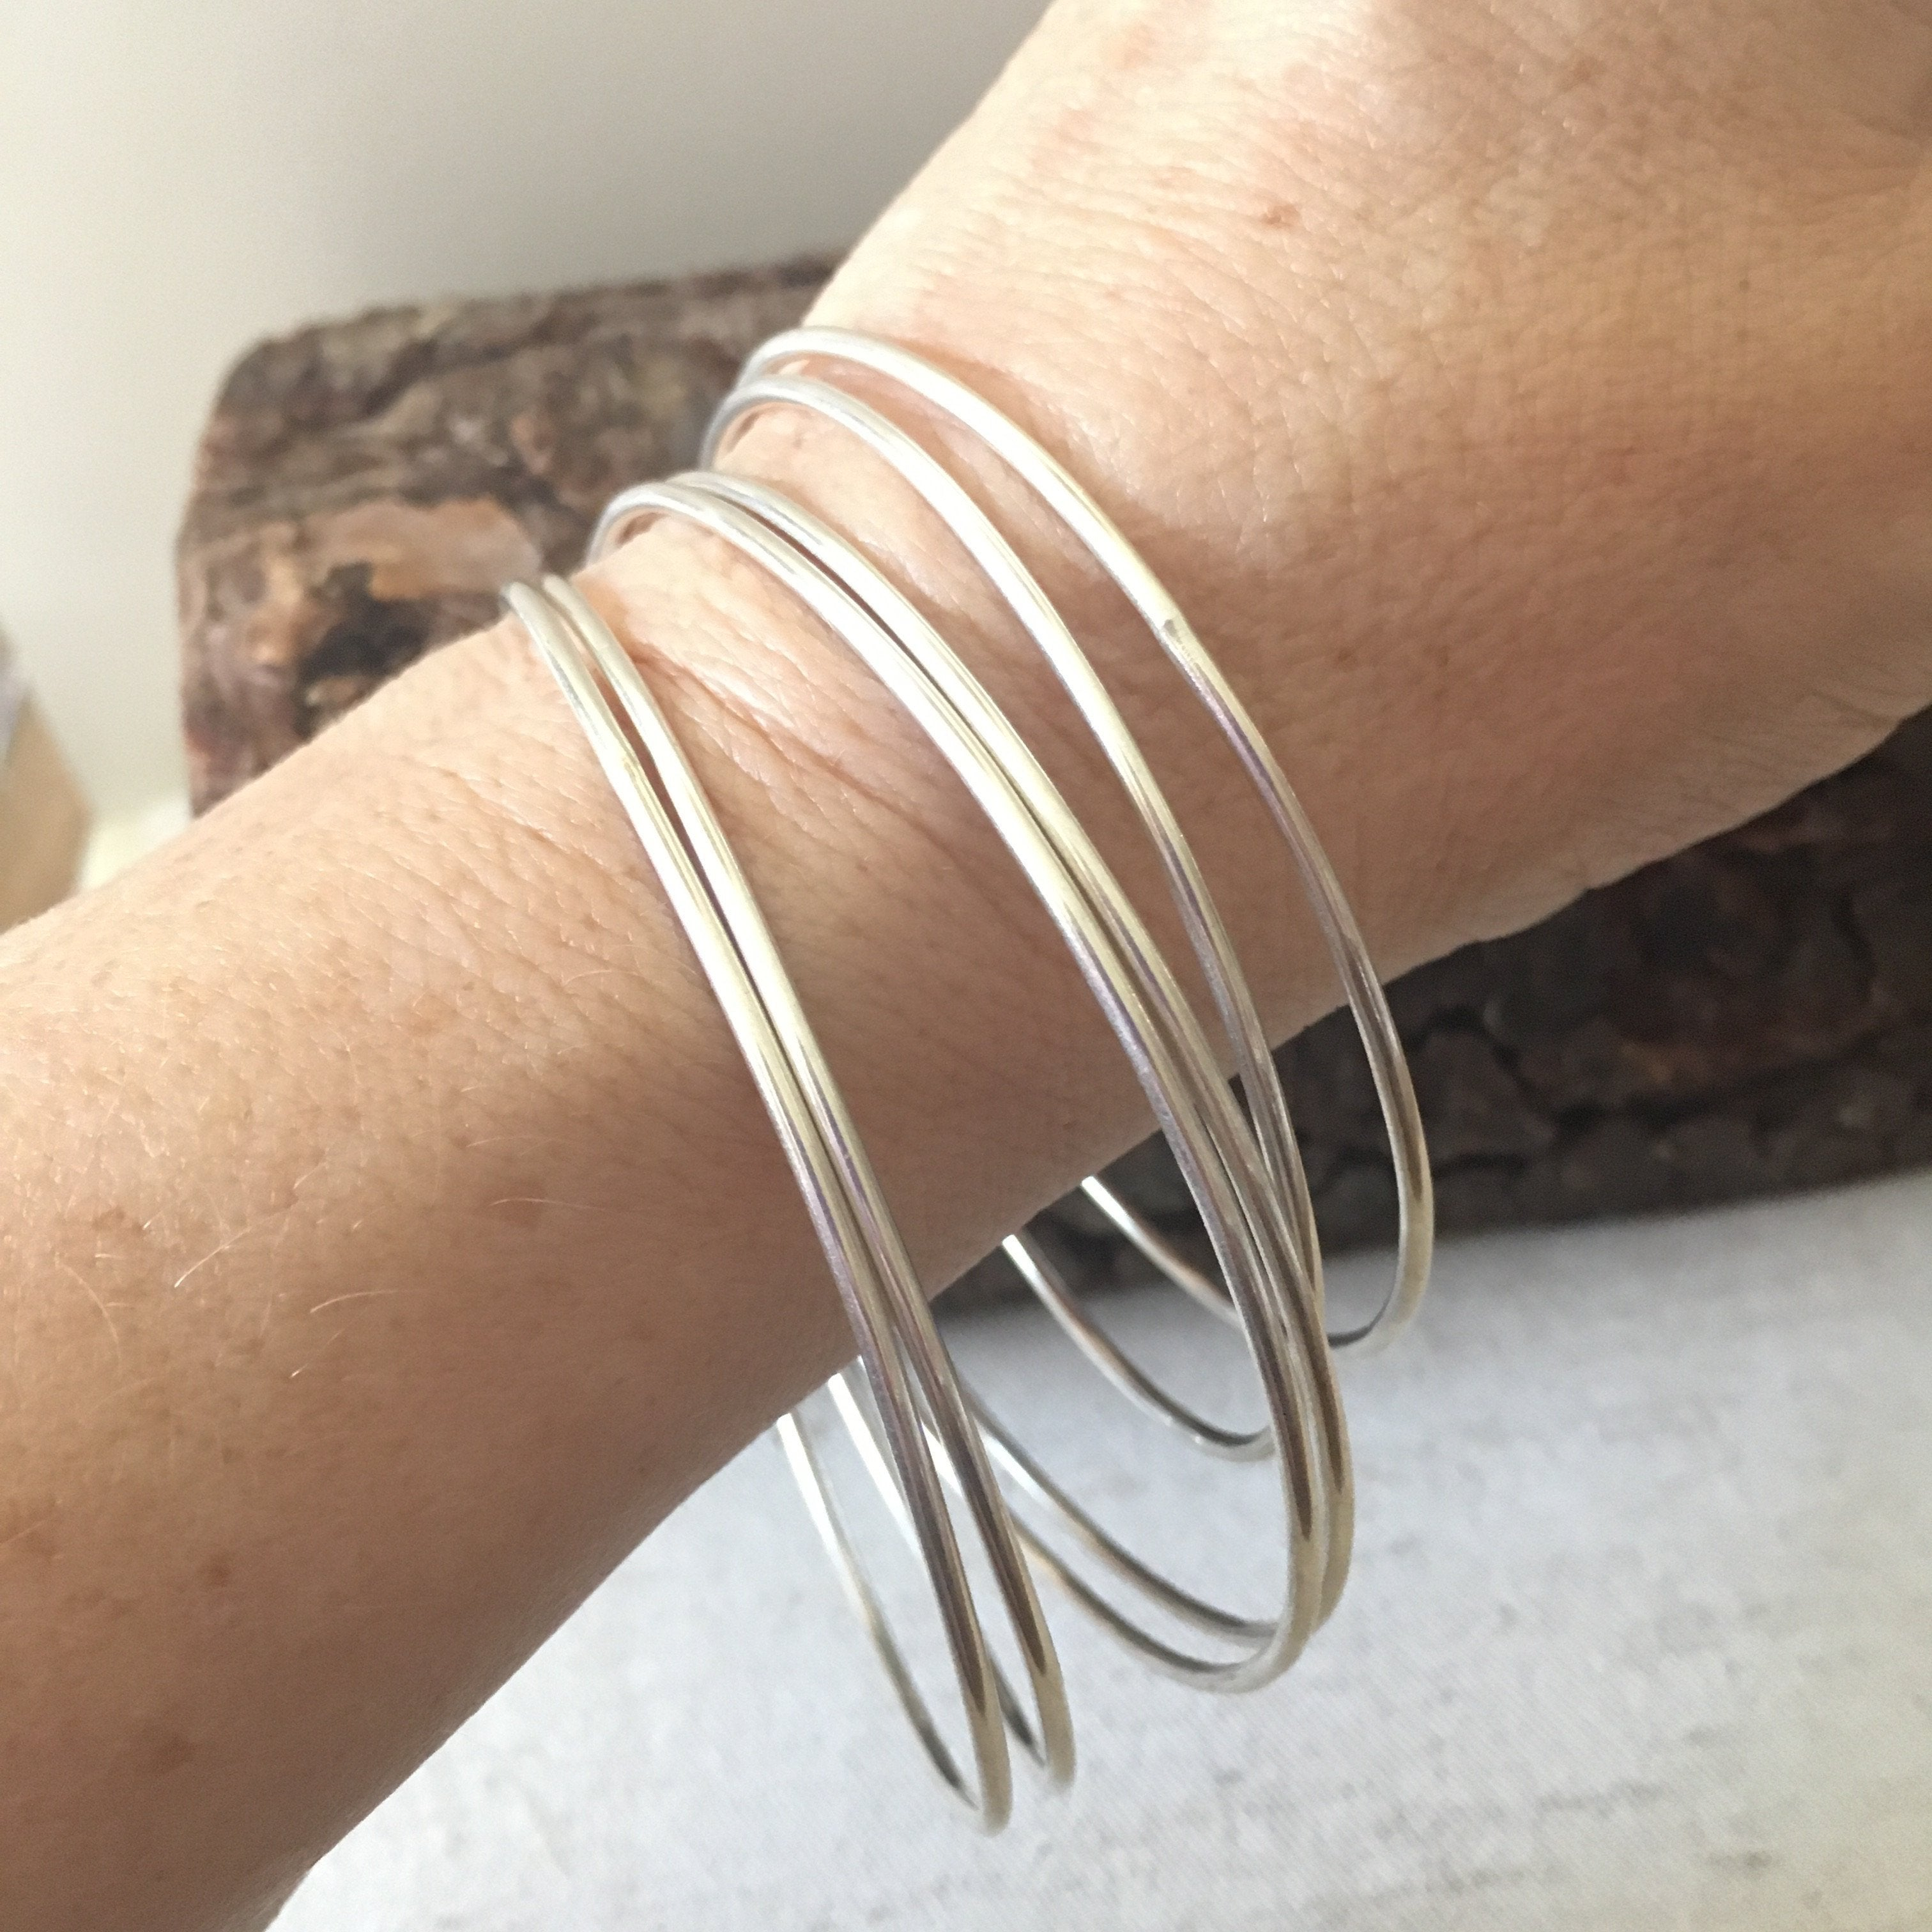 Skinny Sterling Silver Bangles 14 Gauge All Handmade Mothers On The Mountain Jewelry